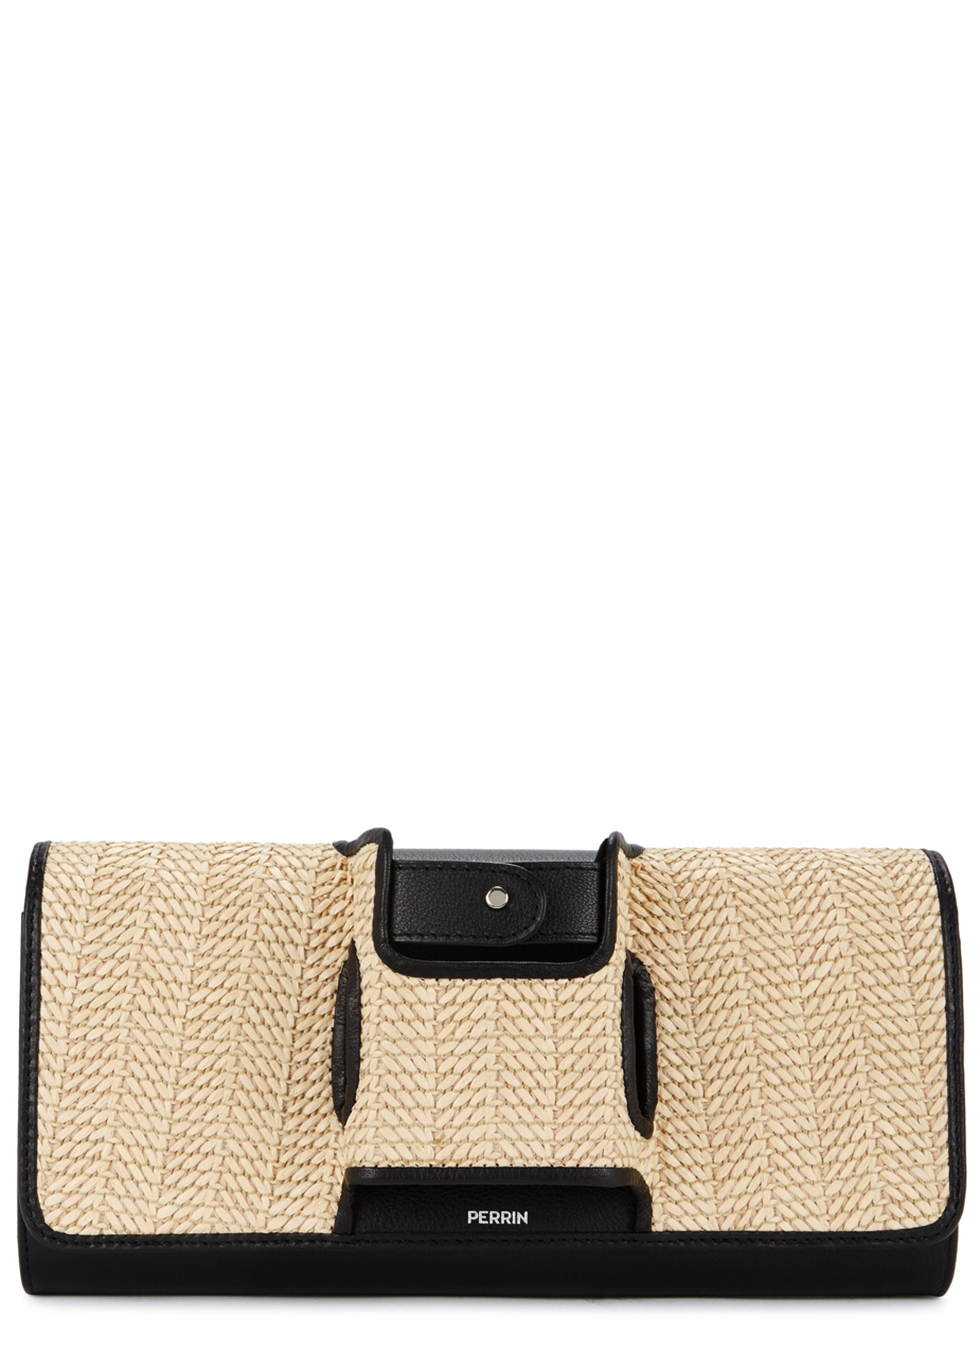 PERRIN Le Capitale Leather And Raffia Clutch in Black